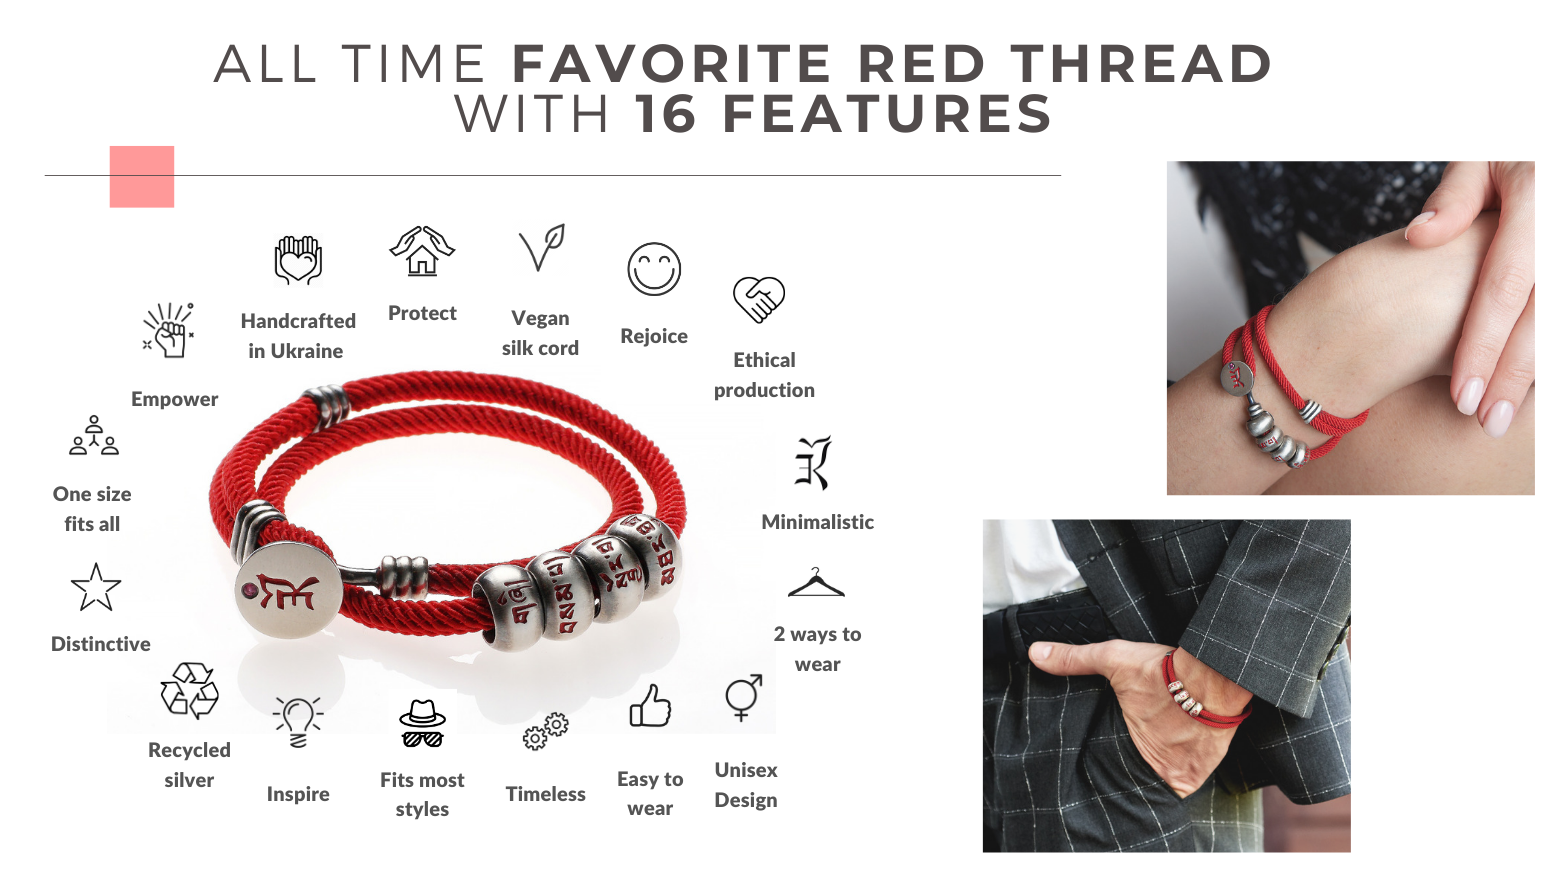 Designed to inspire and protect. Red thread bracelet for those who dream big.